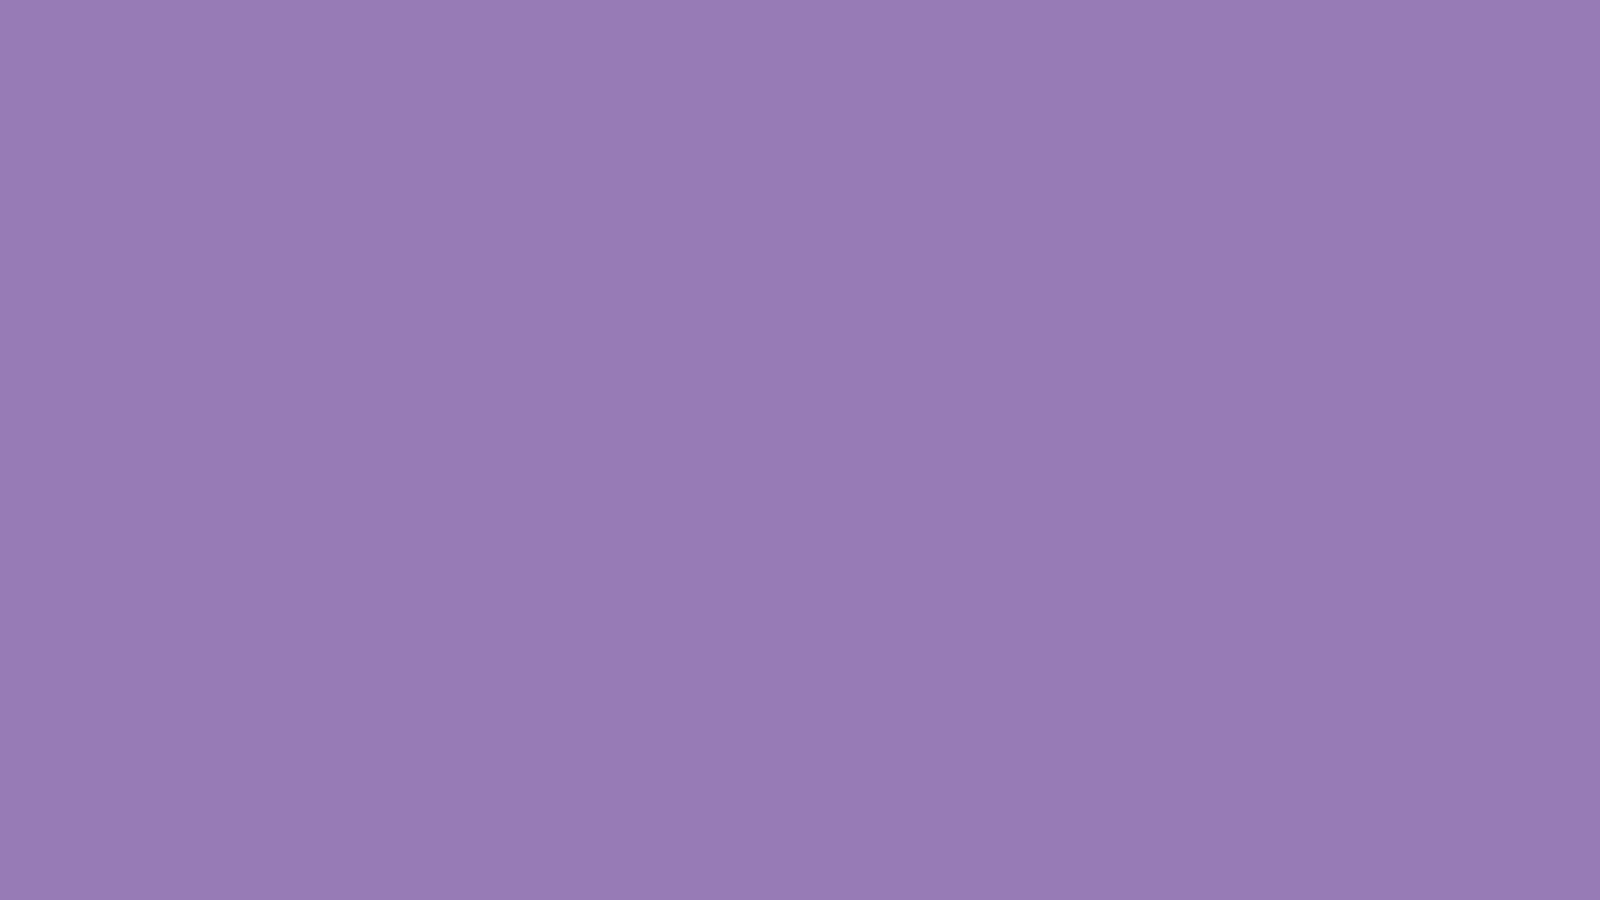 1600x900 Lavender Purple Solid Color Background